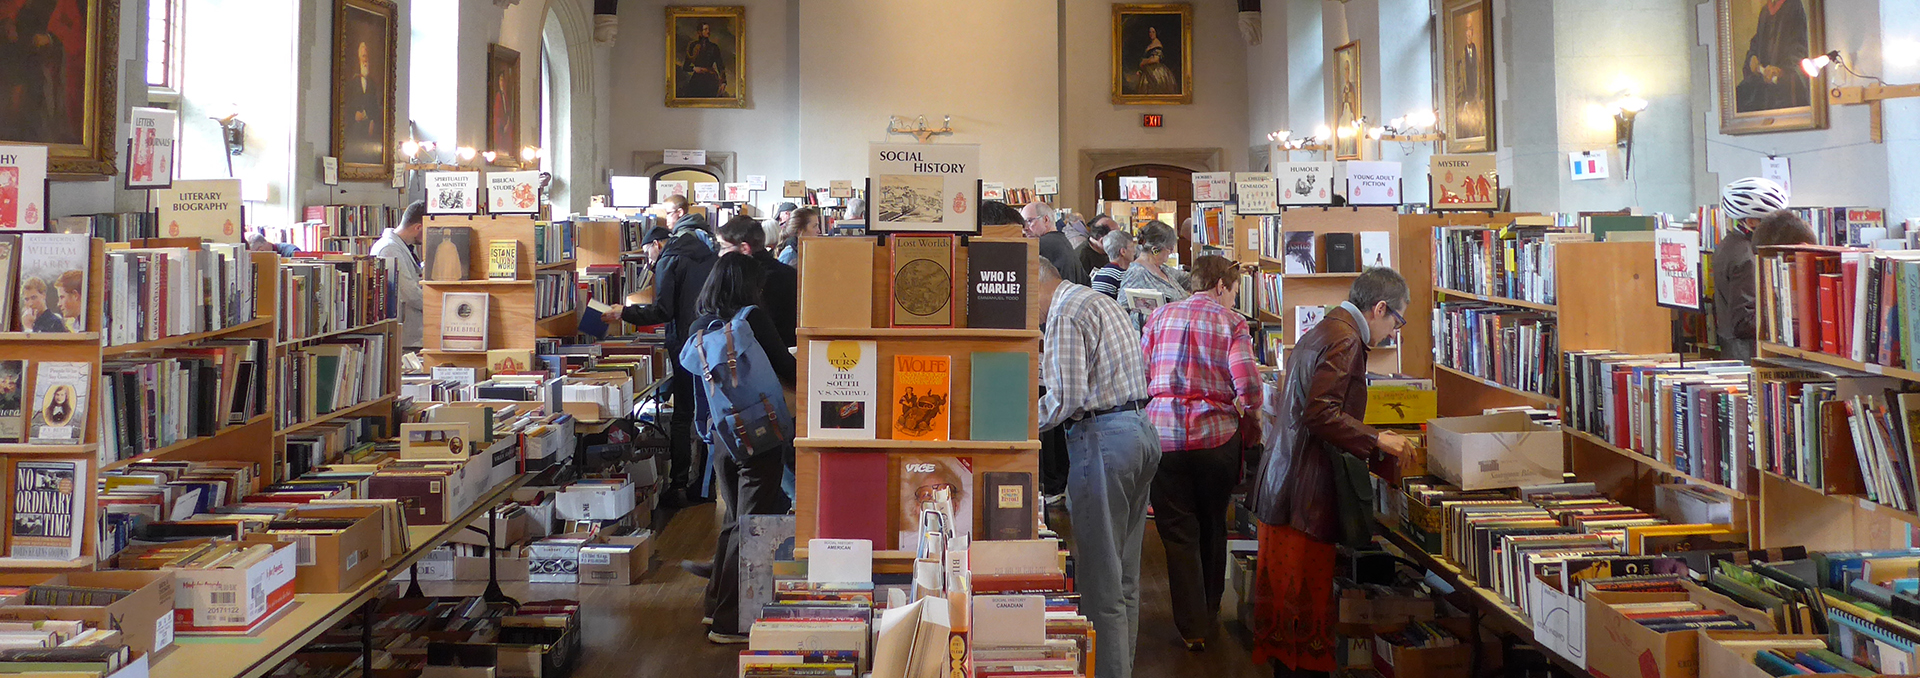 Shoppers at the Book Sale in Seeley Hall